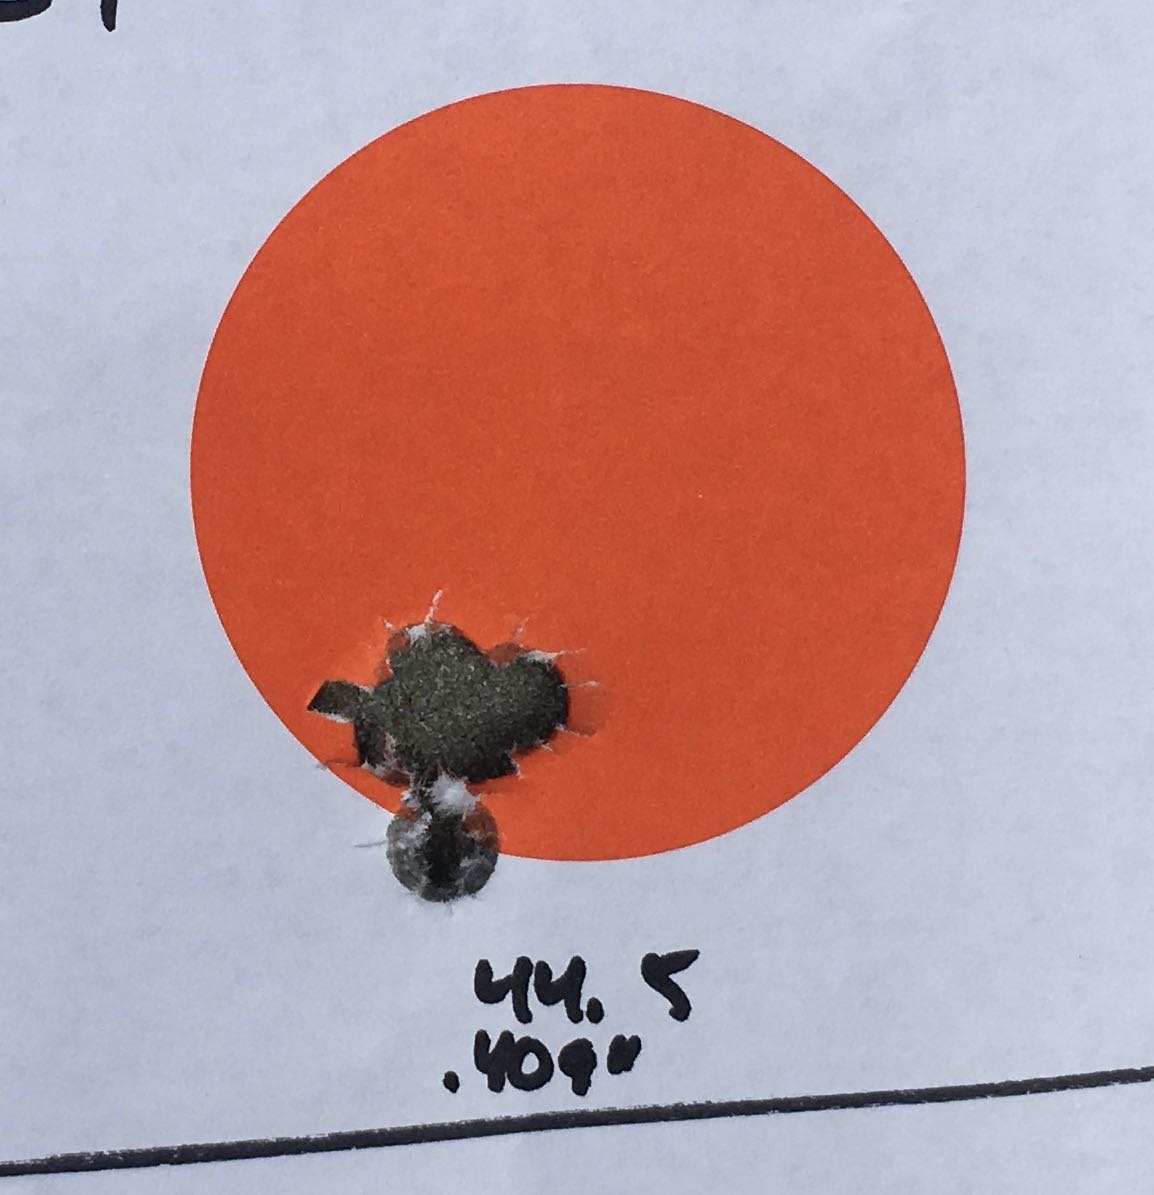 308-win-44-5-imr4064-5-shots-at-100-yards